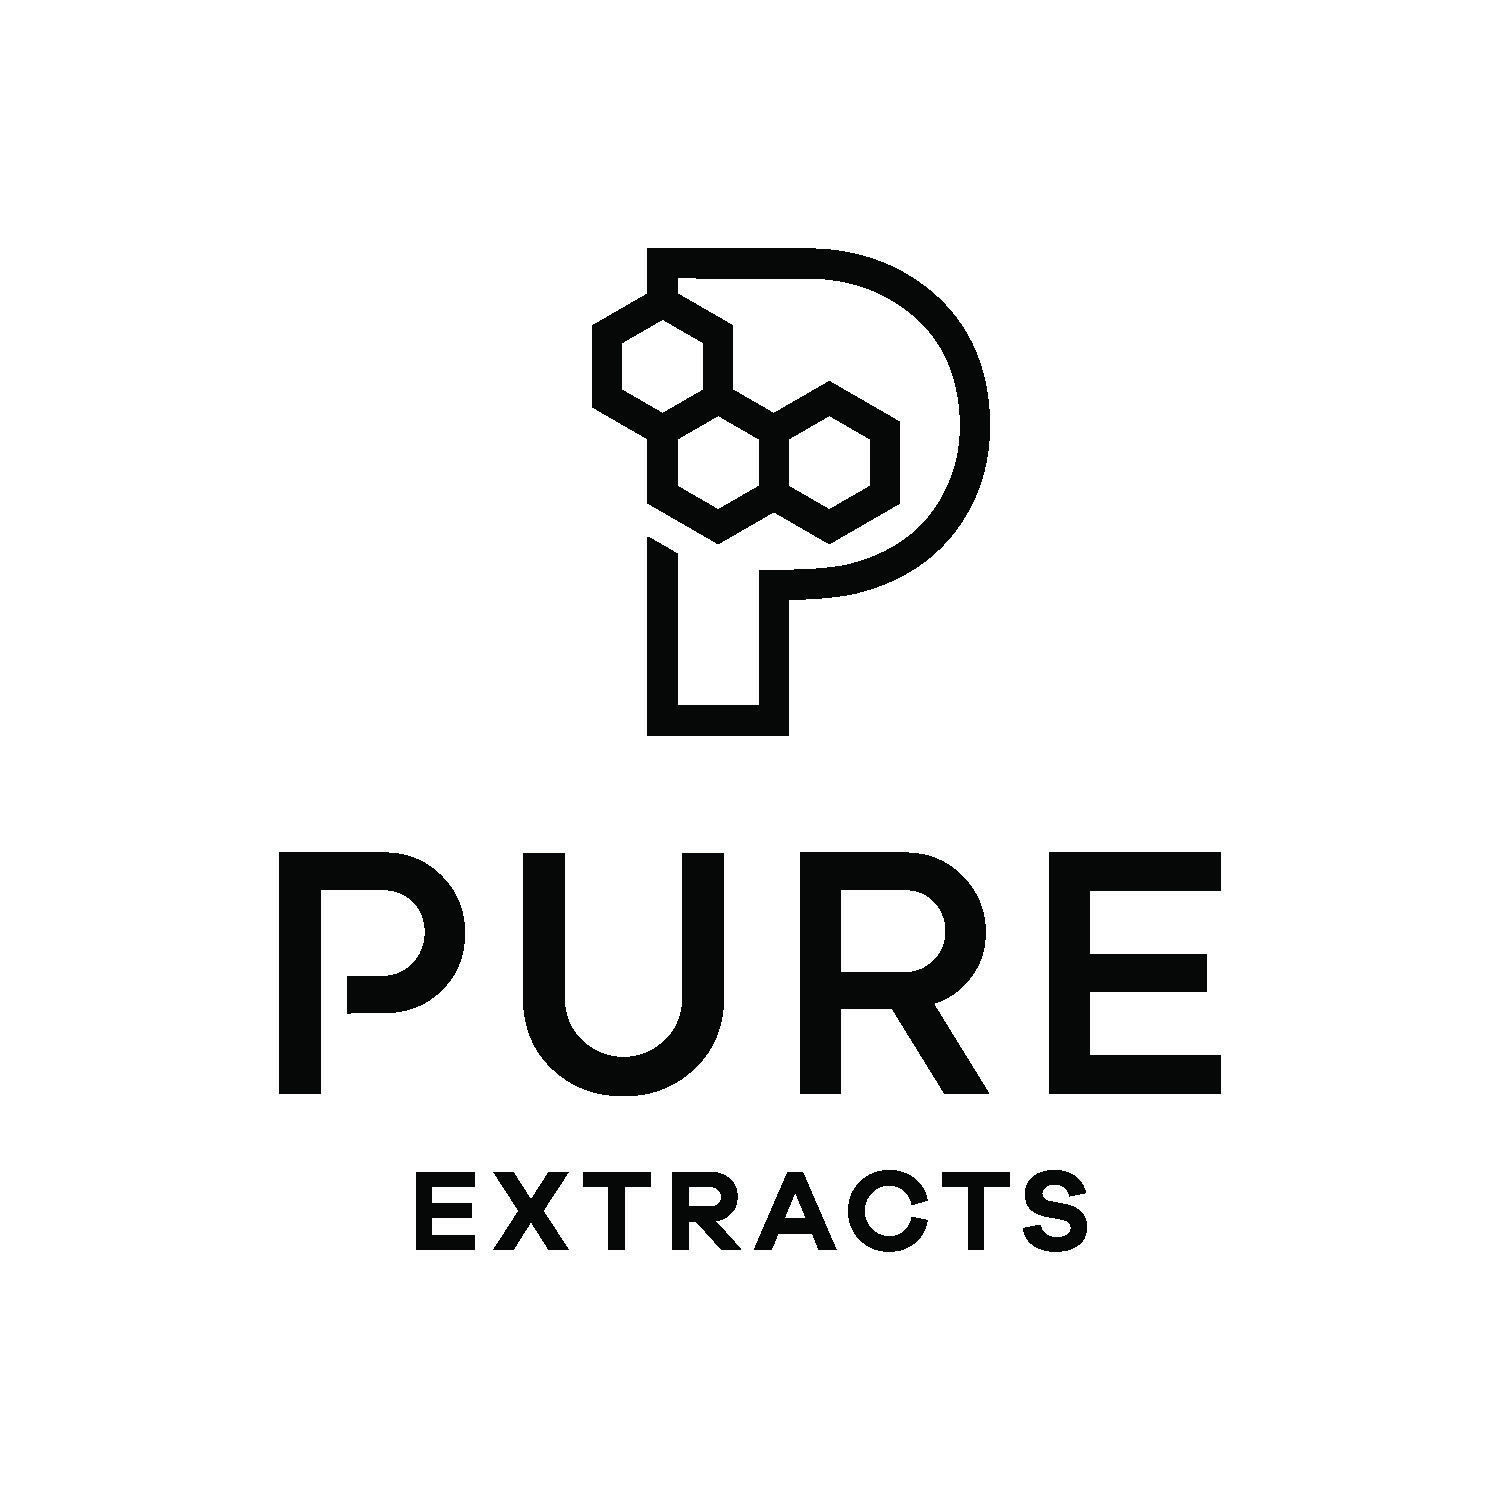 REPEAT - Pure Extracts Announces Submission for Class 1 Natural Product Number (NPN)